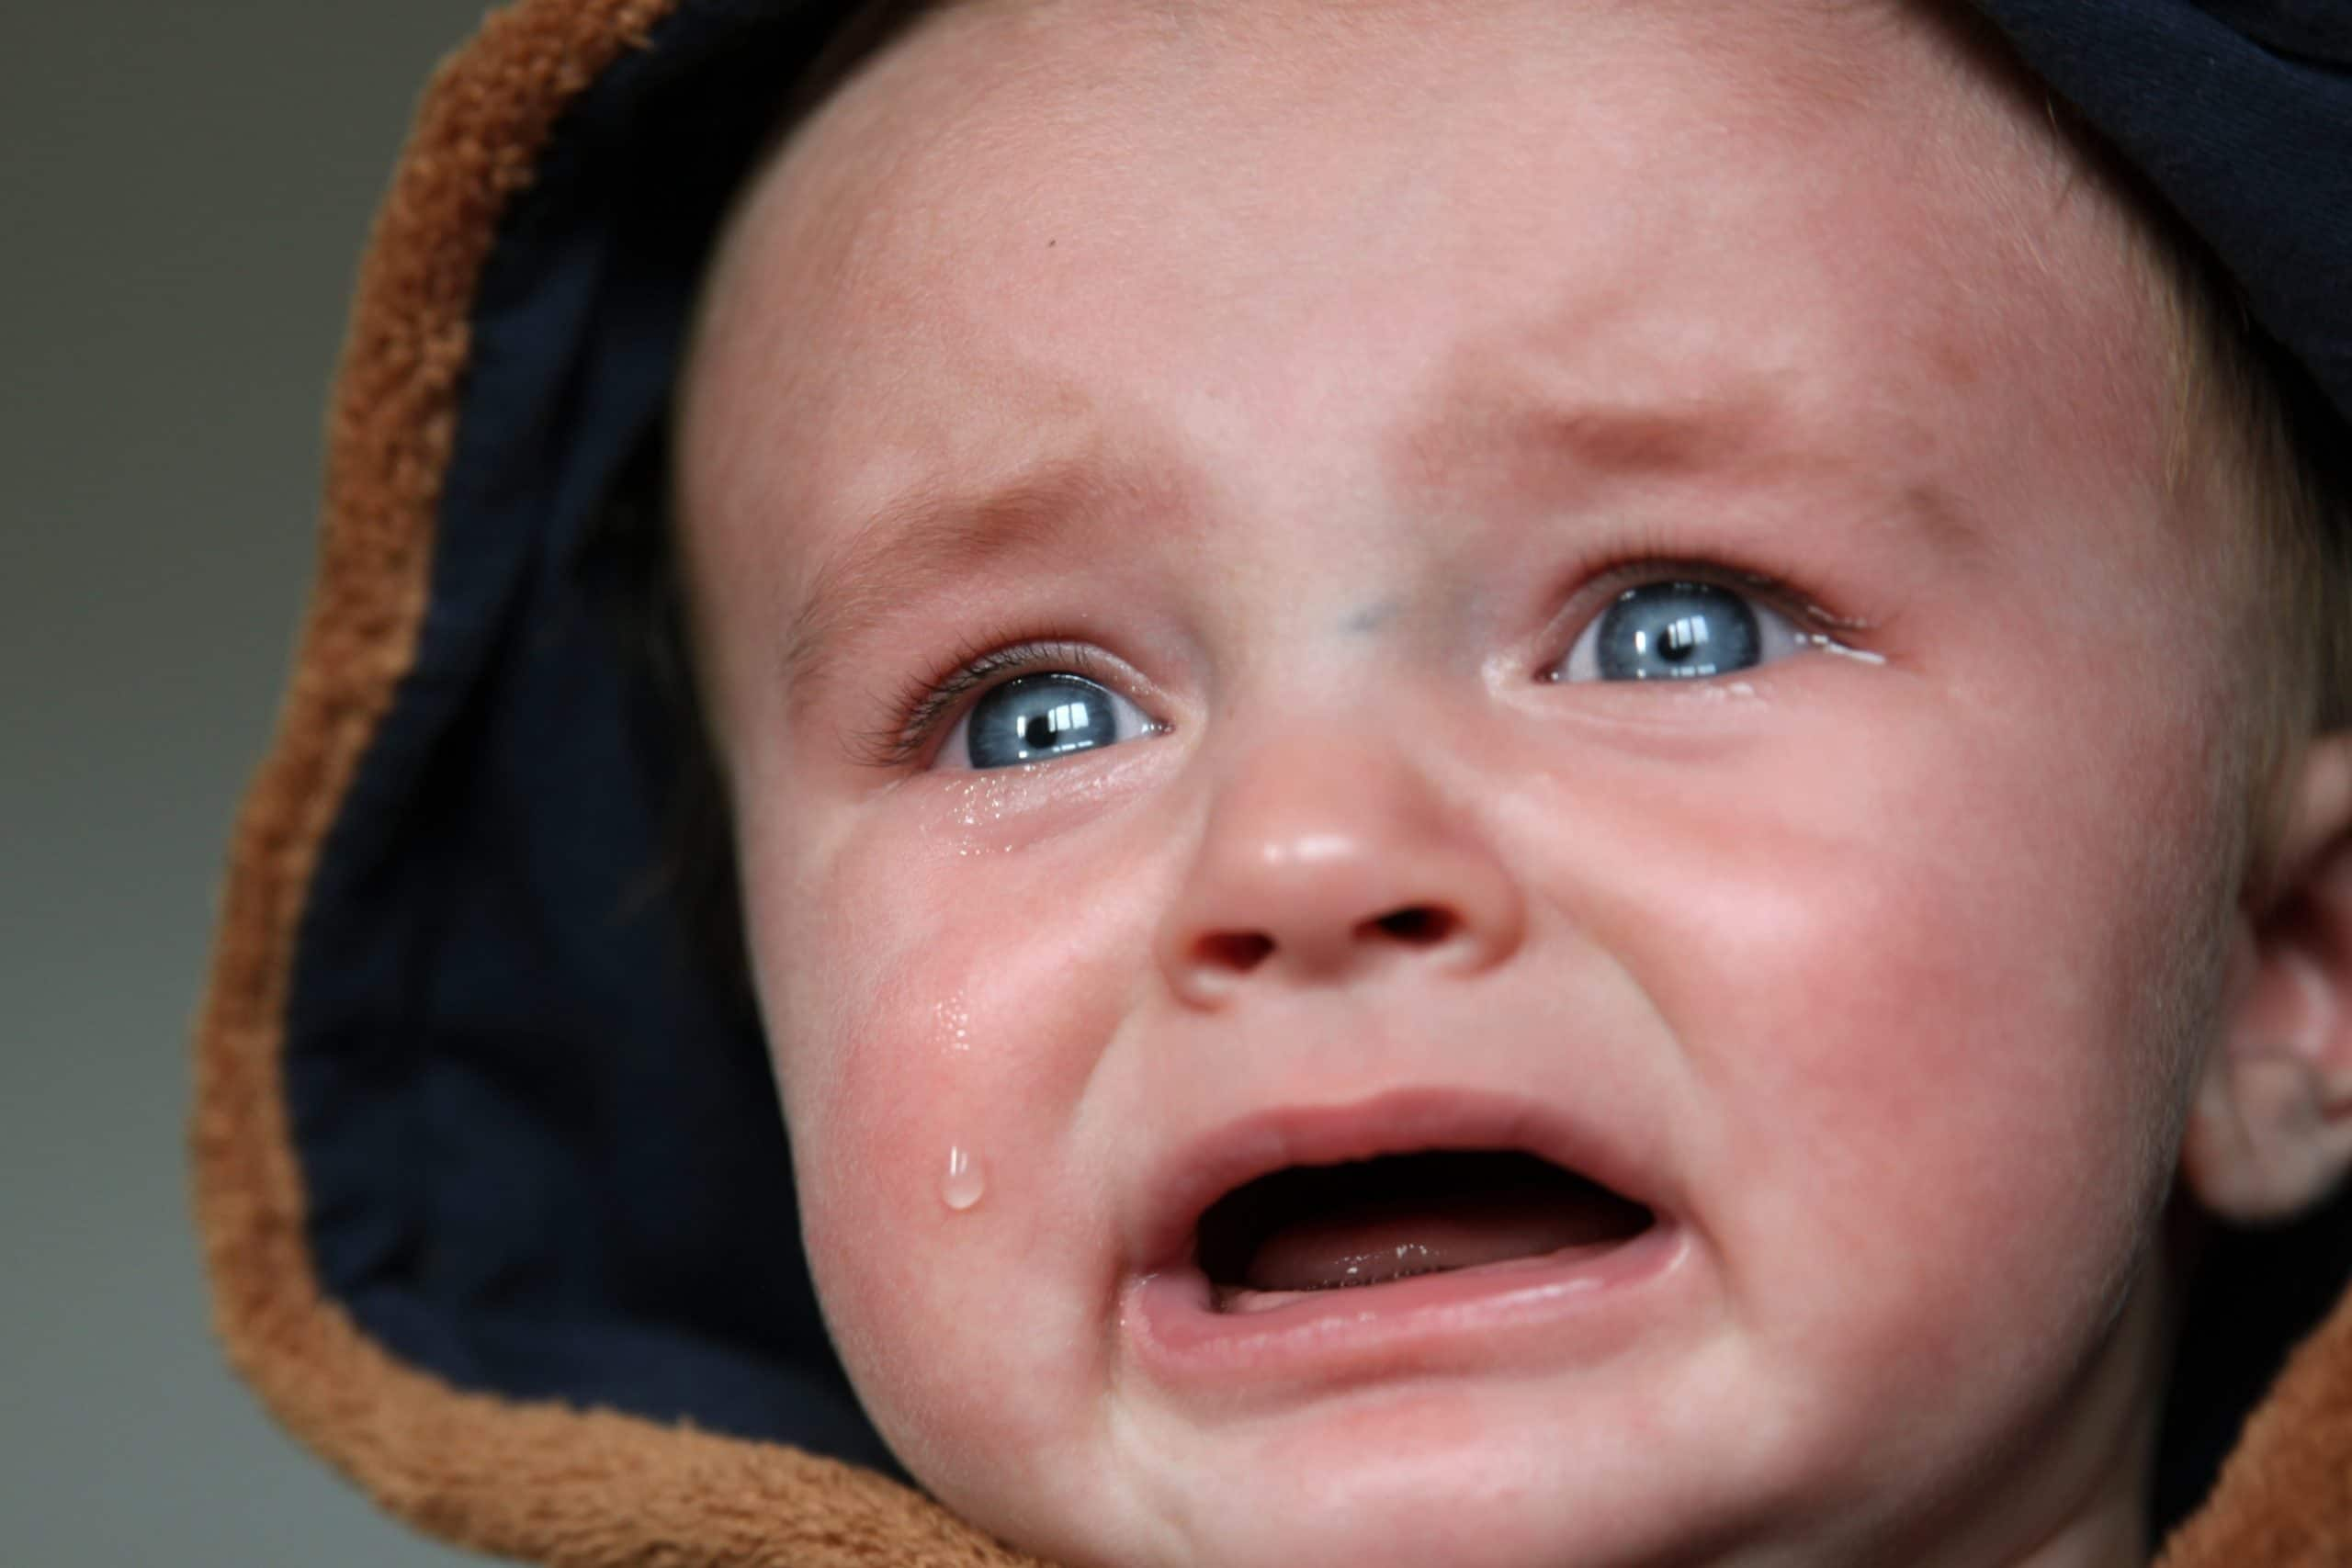 toddlers crying for no reason